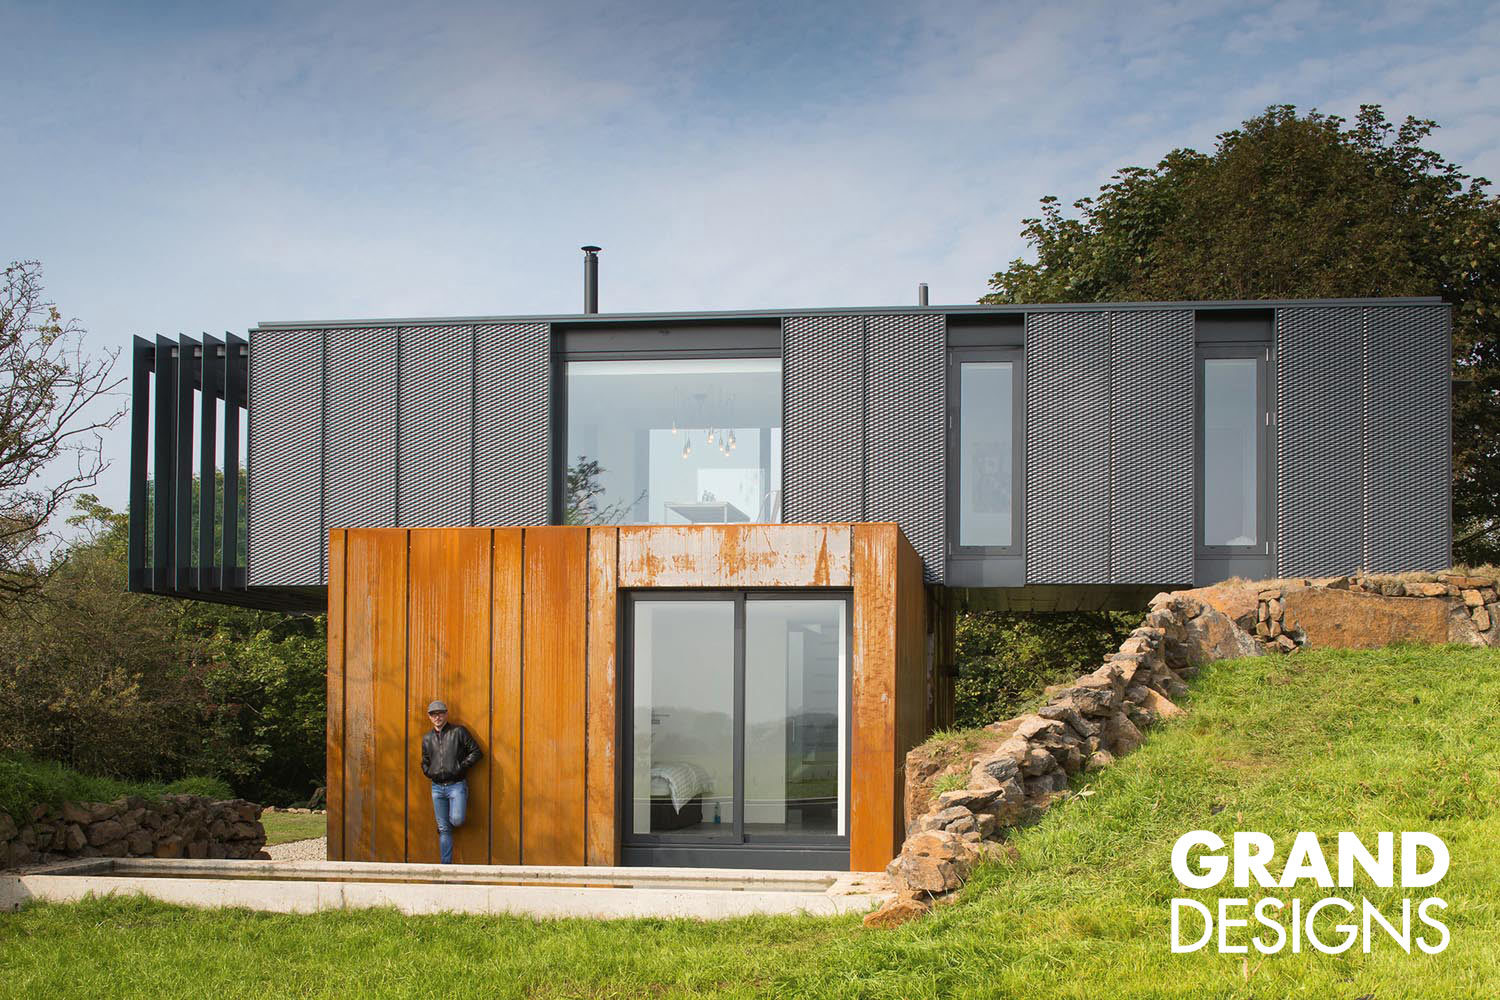 Grand Design by Kevin McCloud. This series takes you though the journey of building a sustainable home from scratch - designing, financing, haggling, fights & disagreements to the final achievement by common folks.